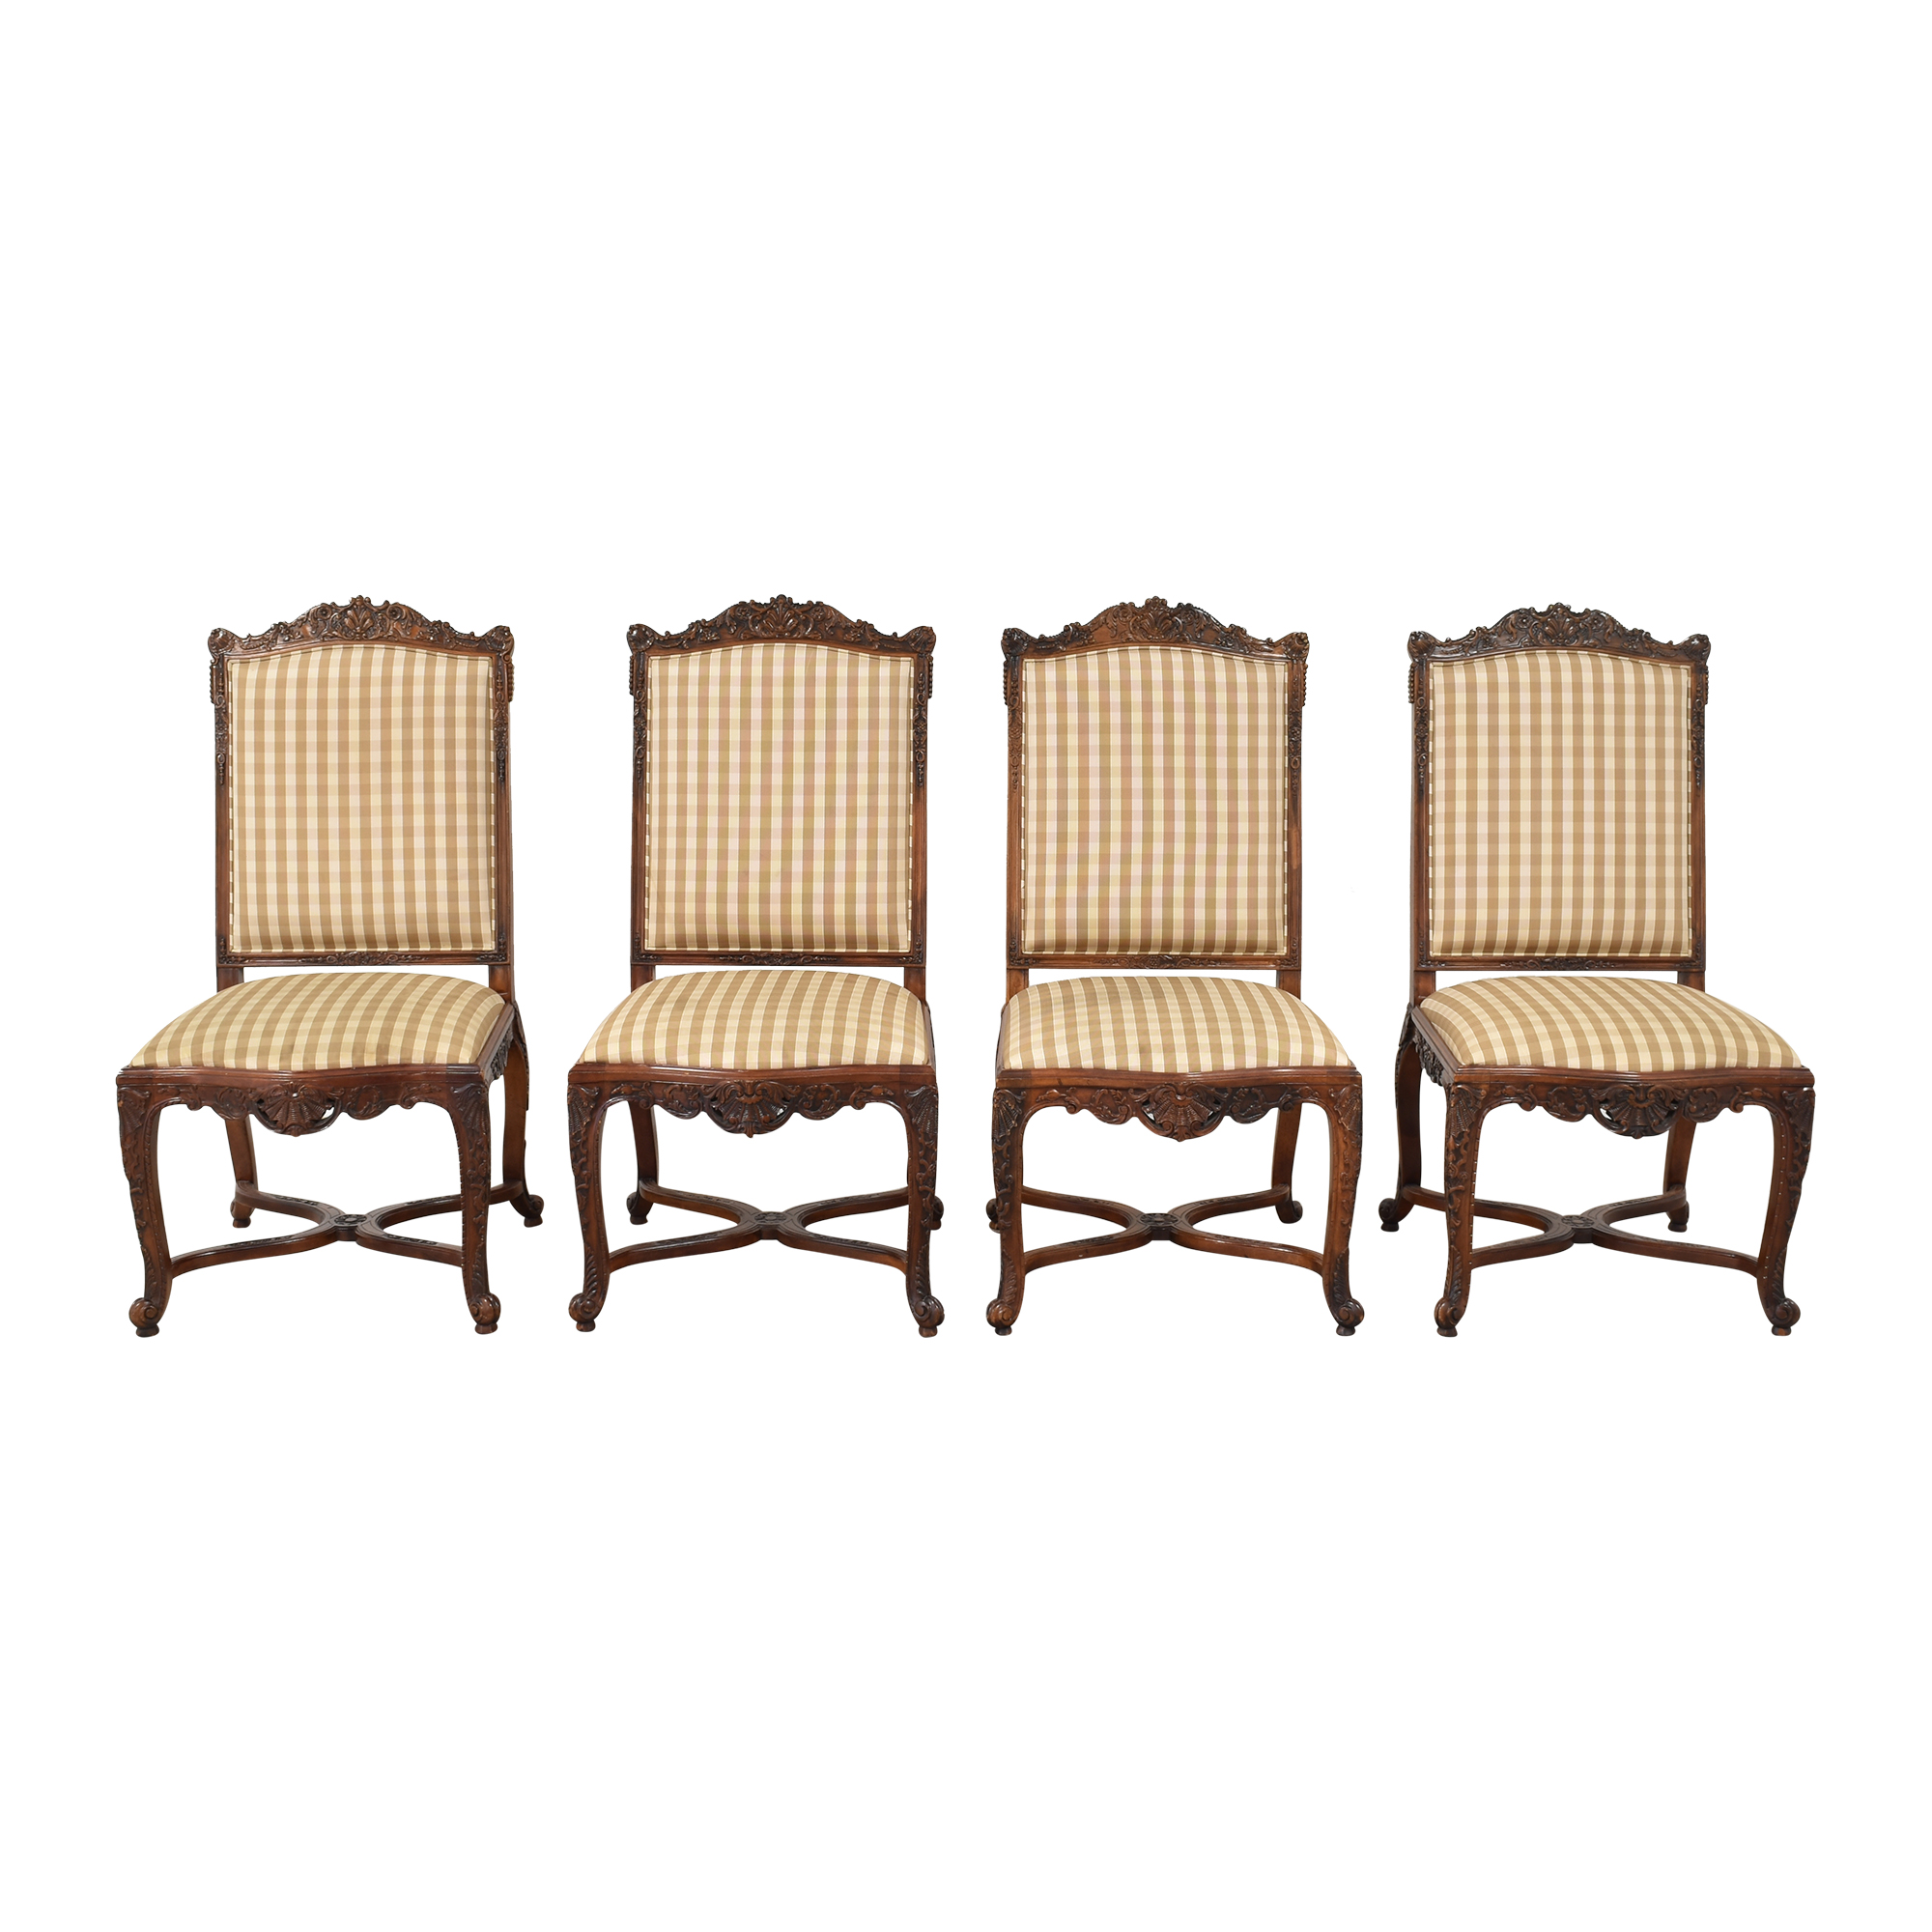 shop Henredon Upholstered Dining Chairs Henredon Furniture Dining Chairs